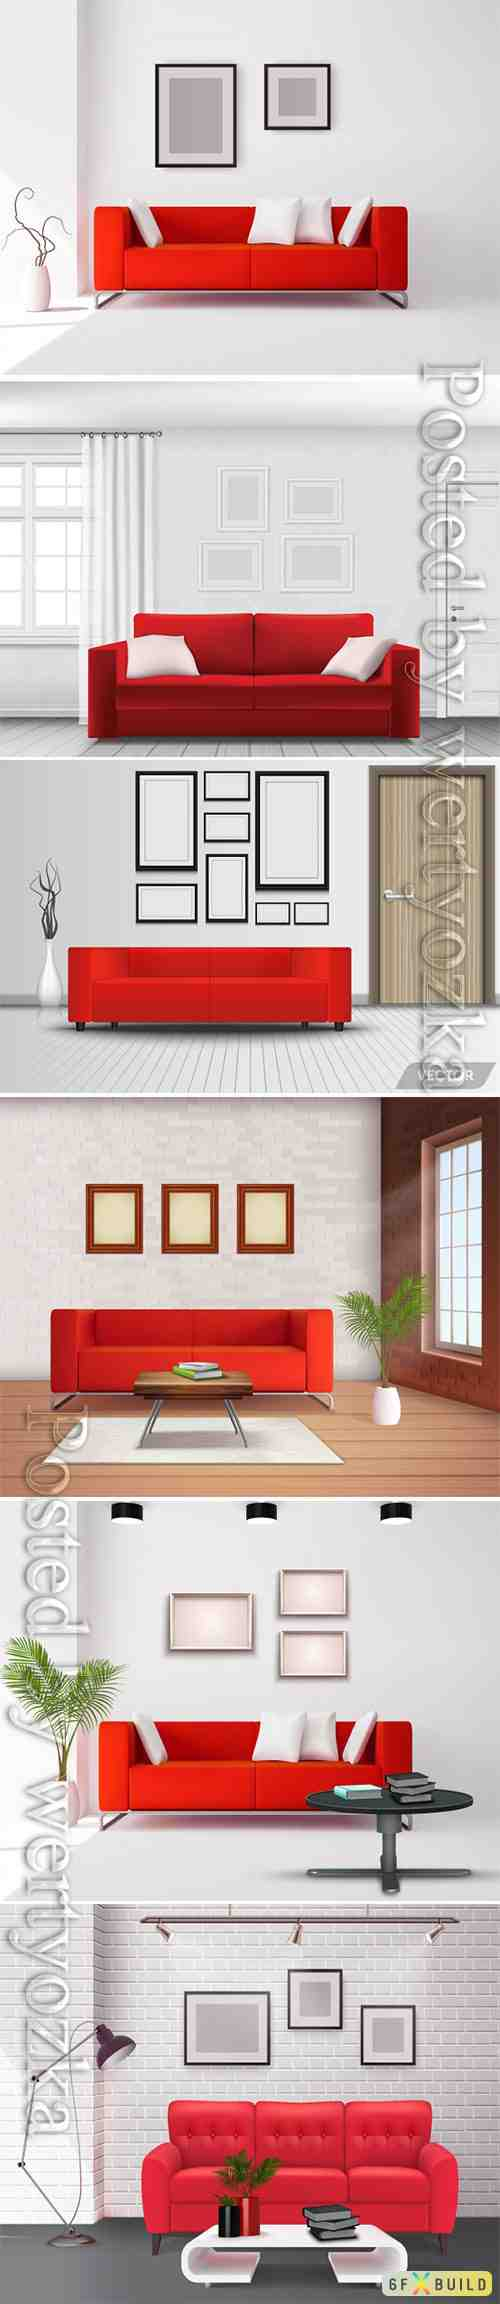 Realistic home interior vector template # 2